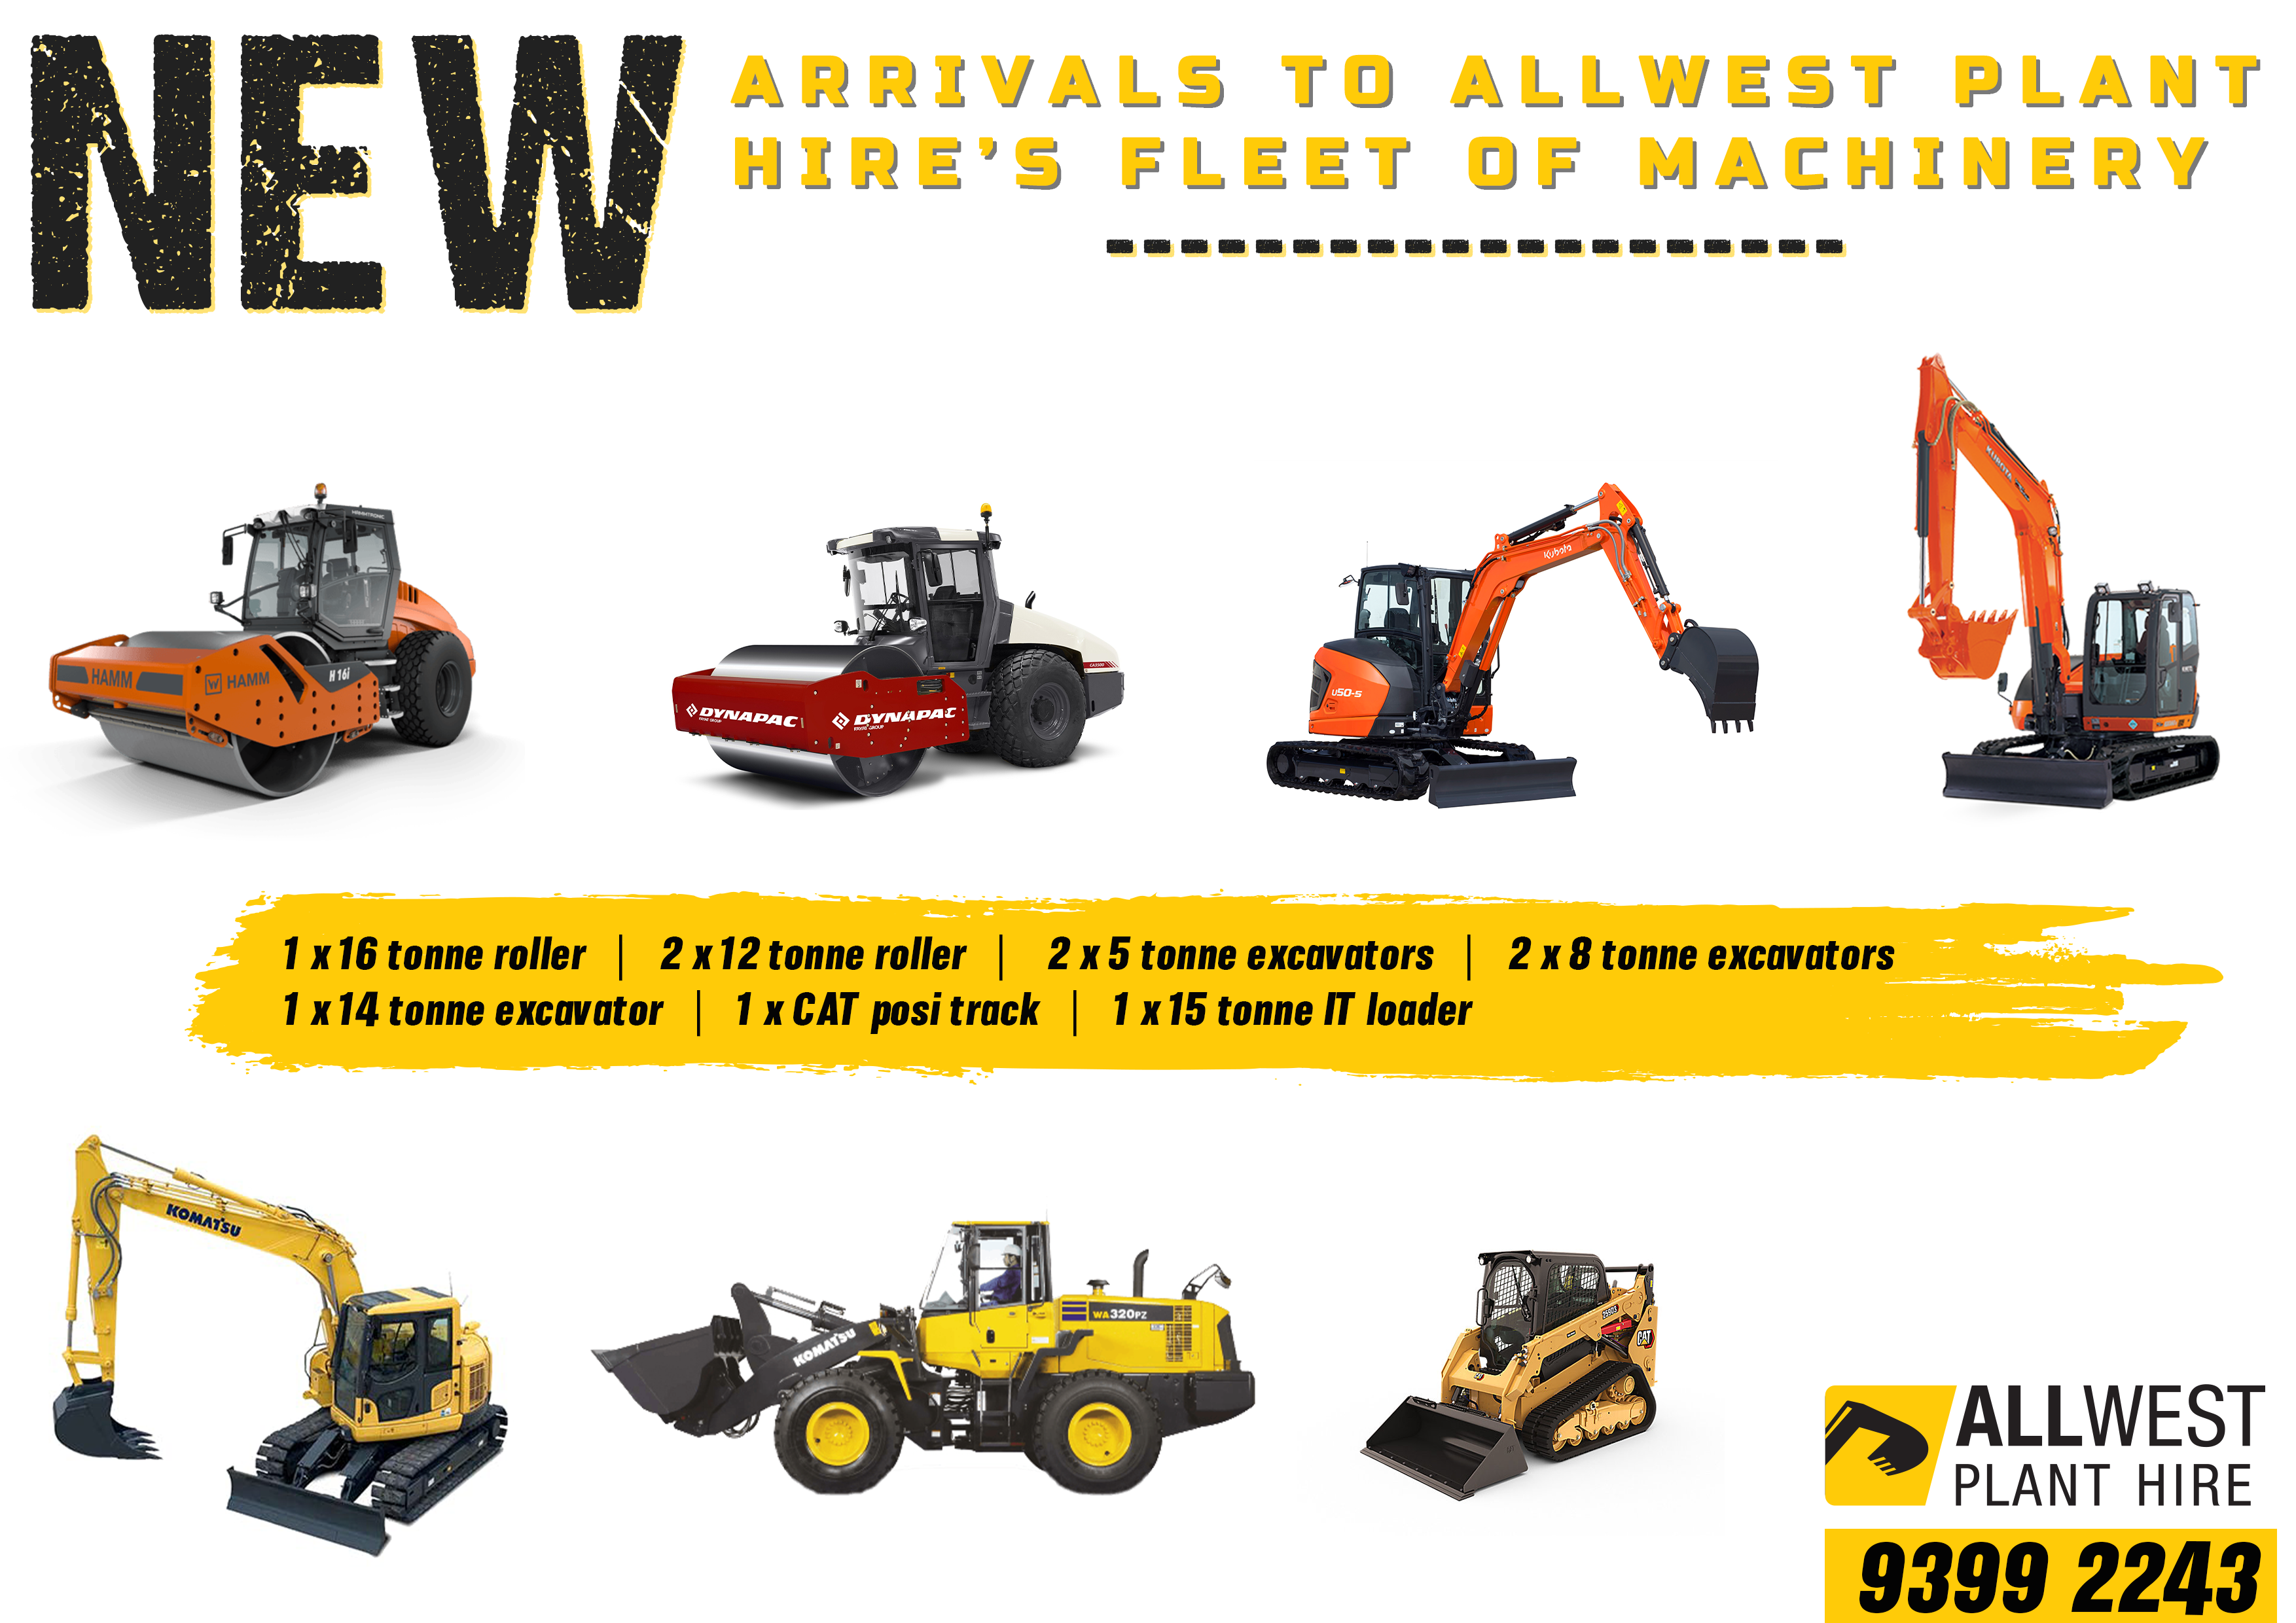 New Arrivals All West Plant Hire